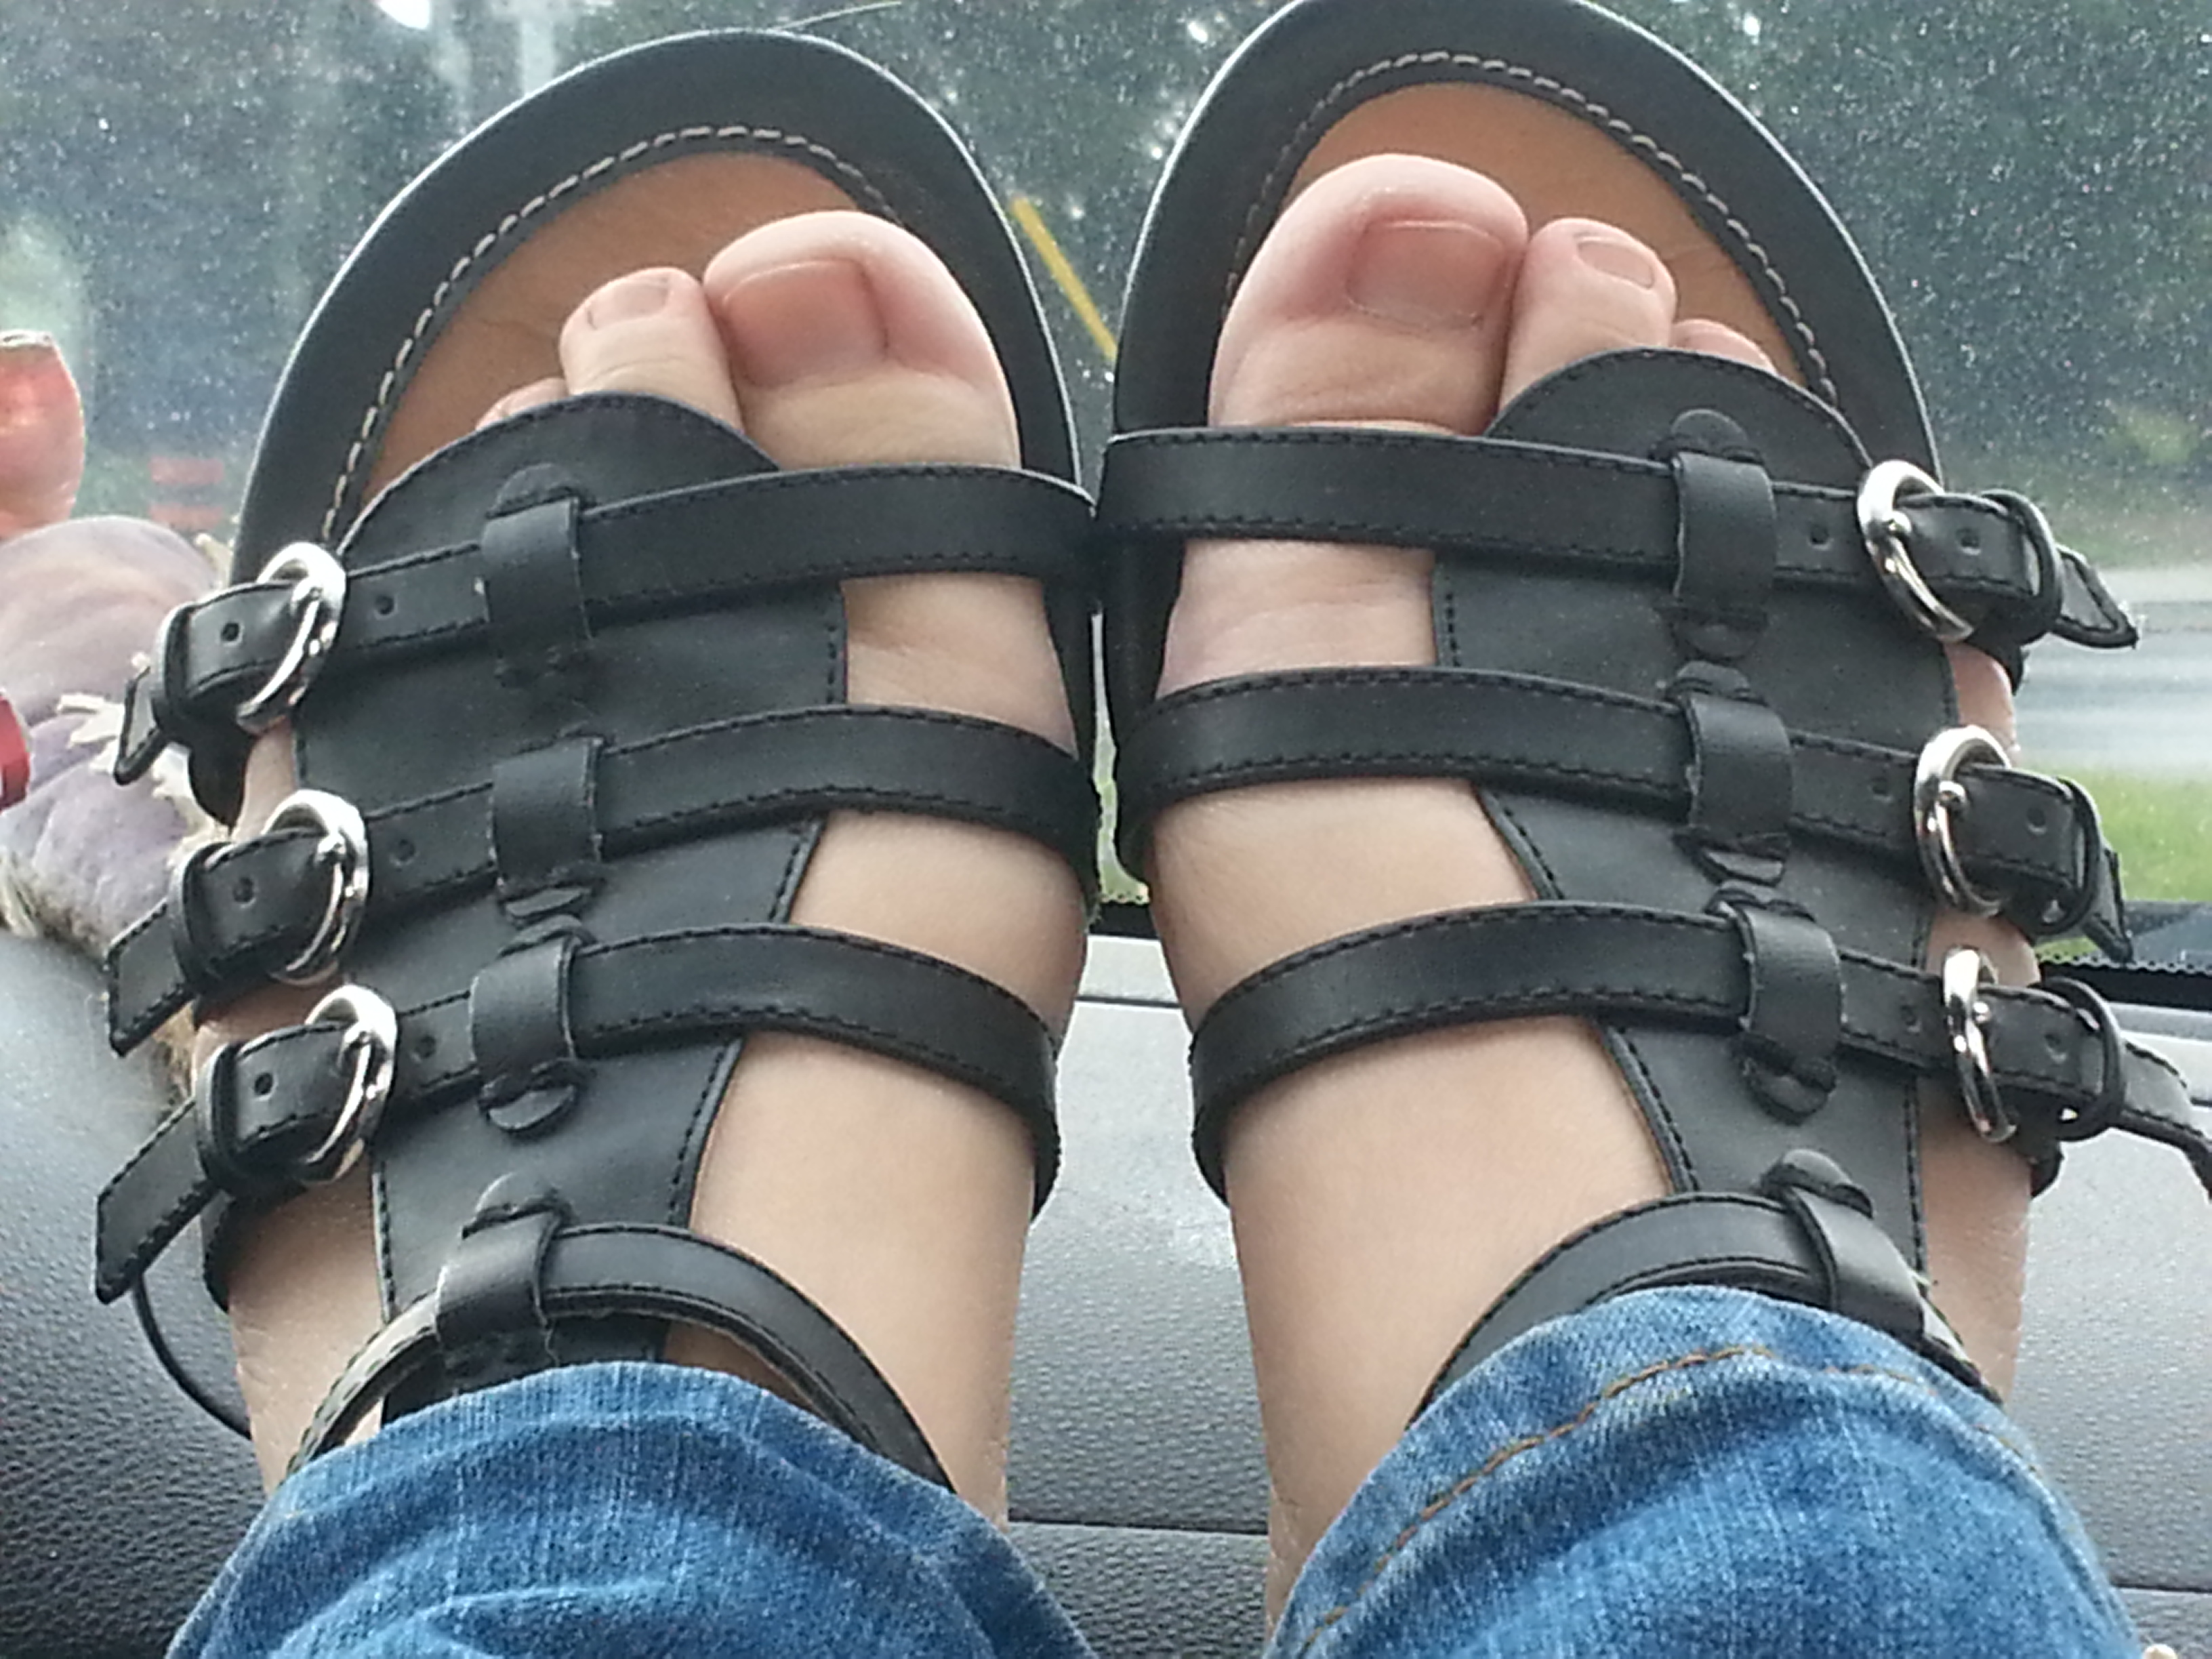 My travelling feet in sandals.